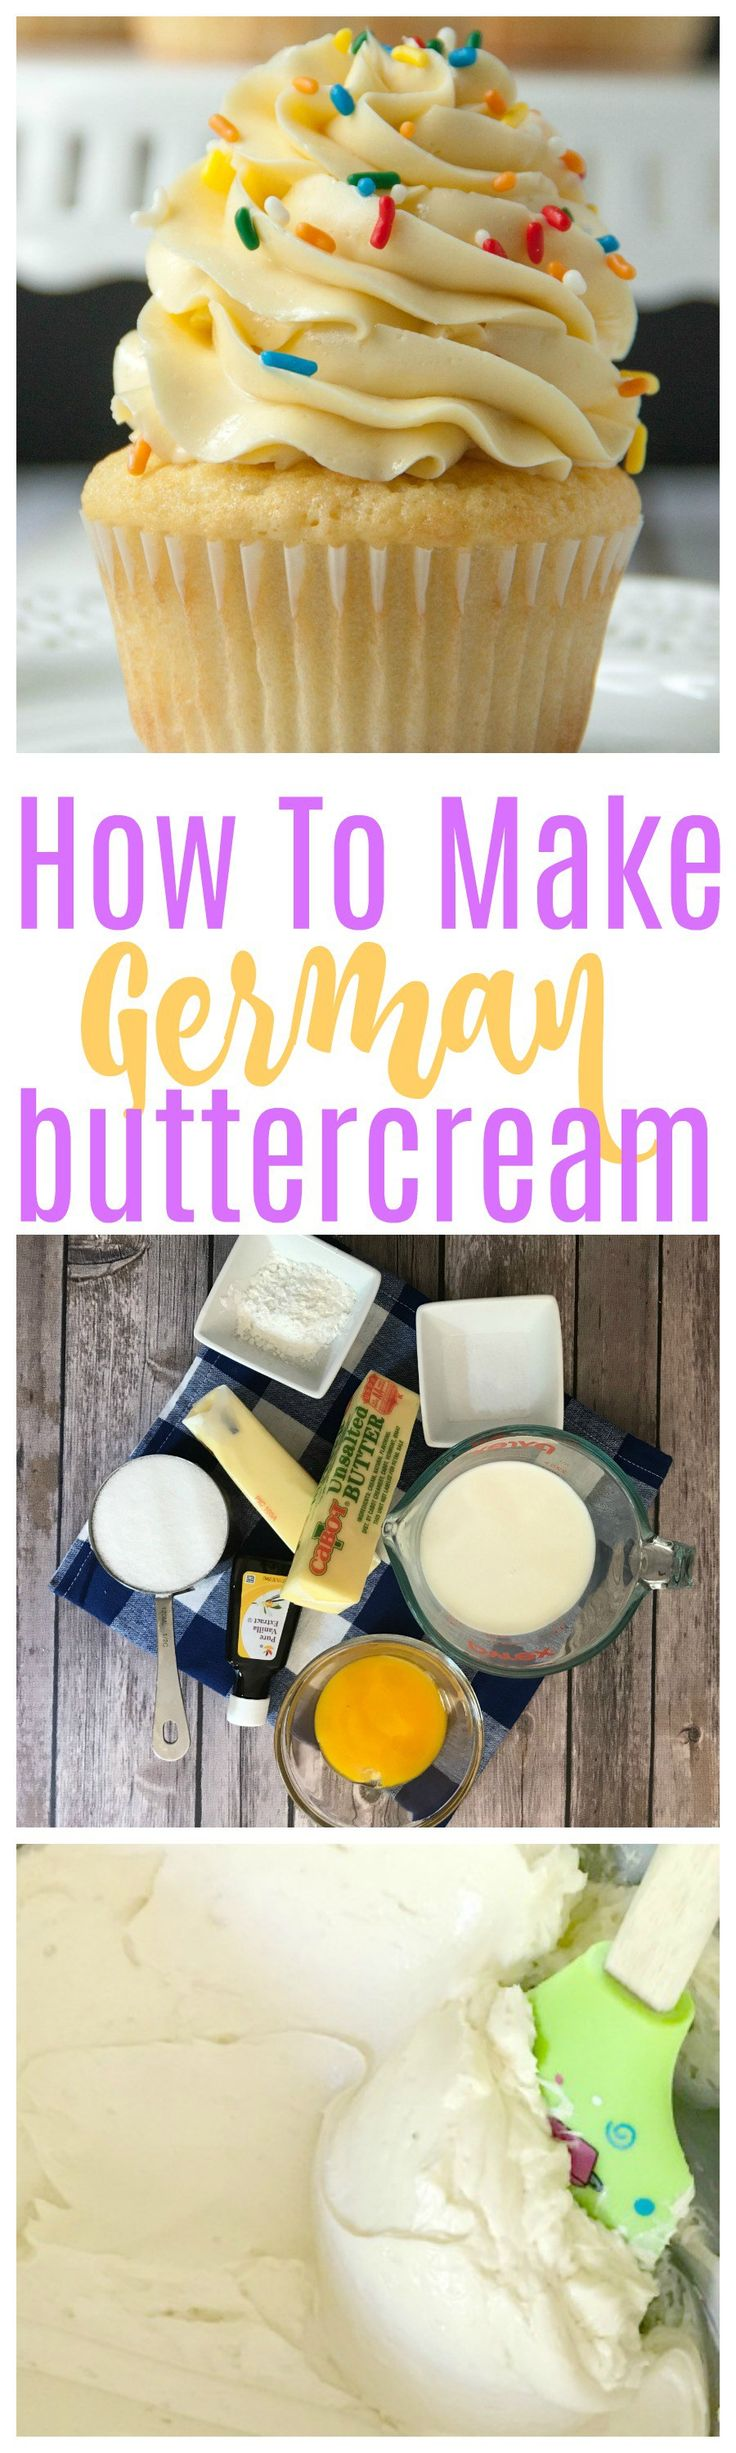 Buttercream Basics: How To Make German Buttercream - Boston Girl Bakes